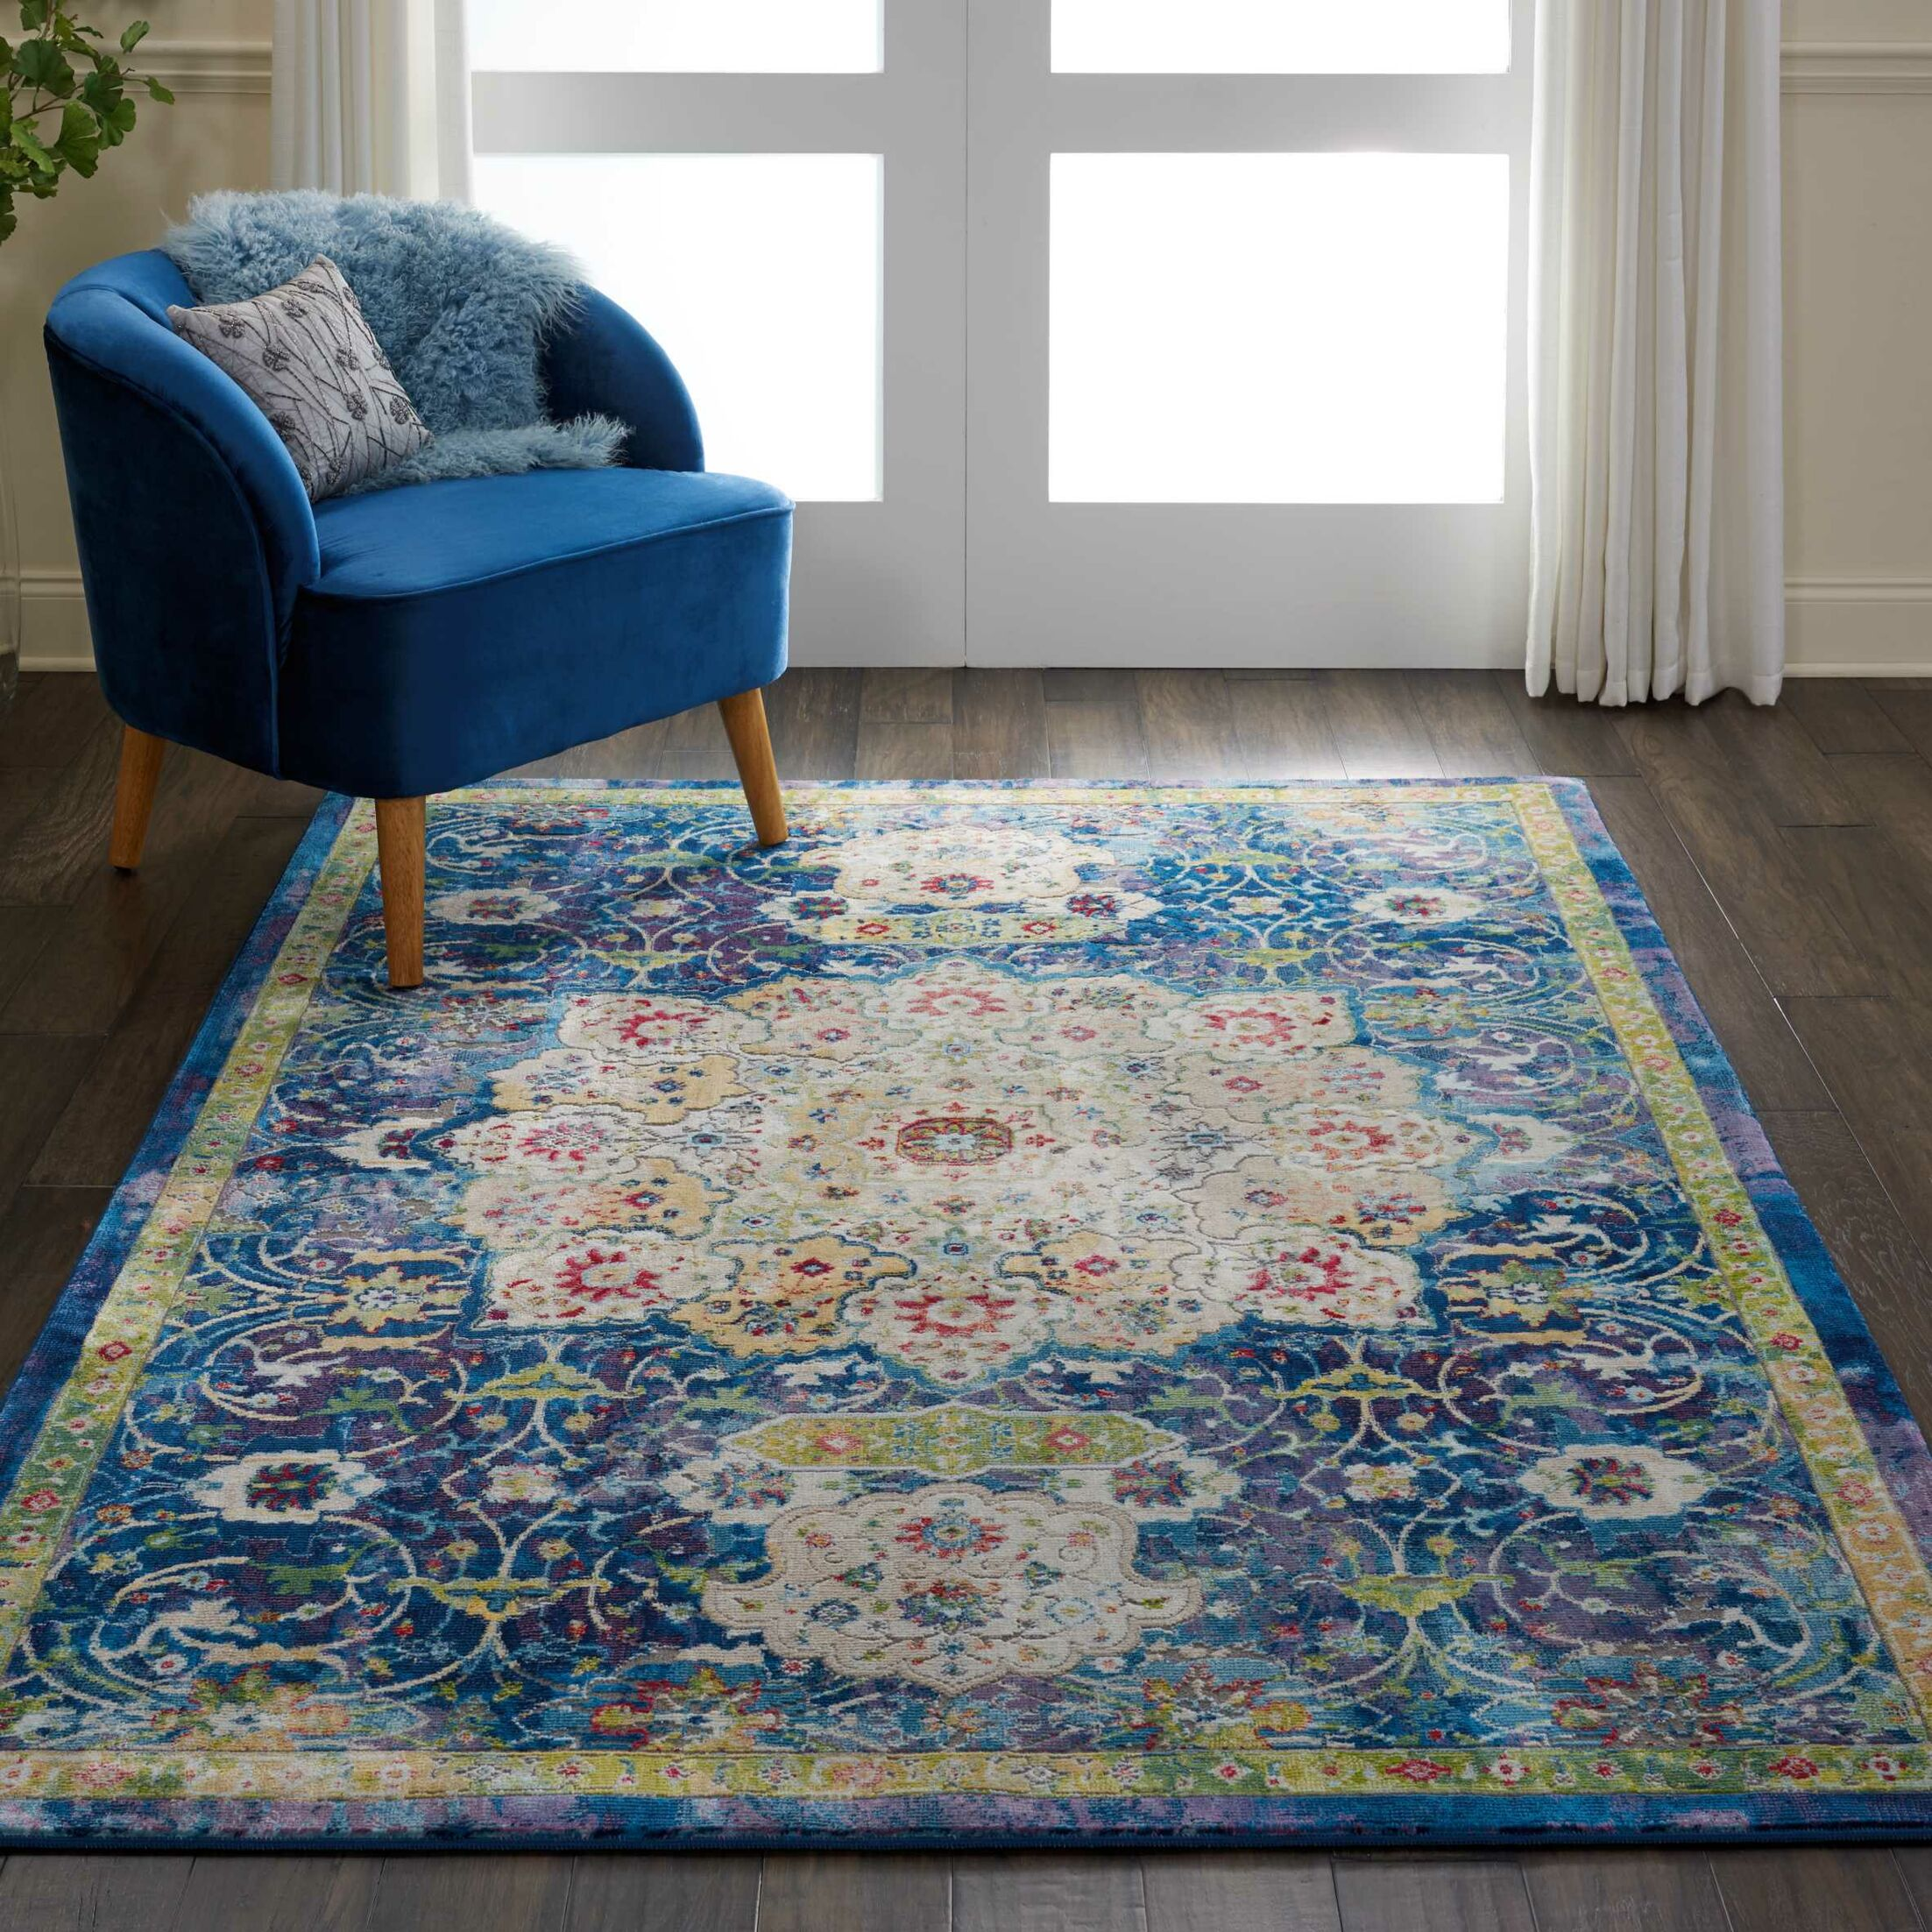 Oglethorpe Power Loom Blue/Cream Area Rug Rug Size: Rectangle 7'10